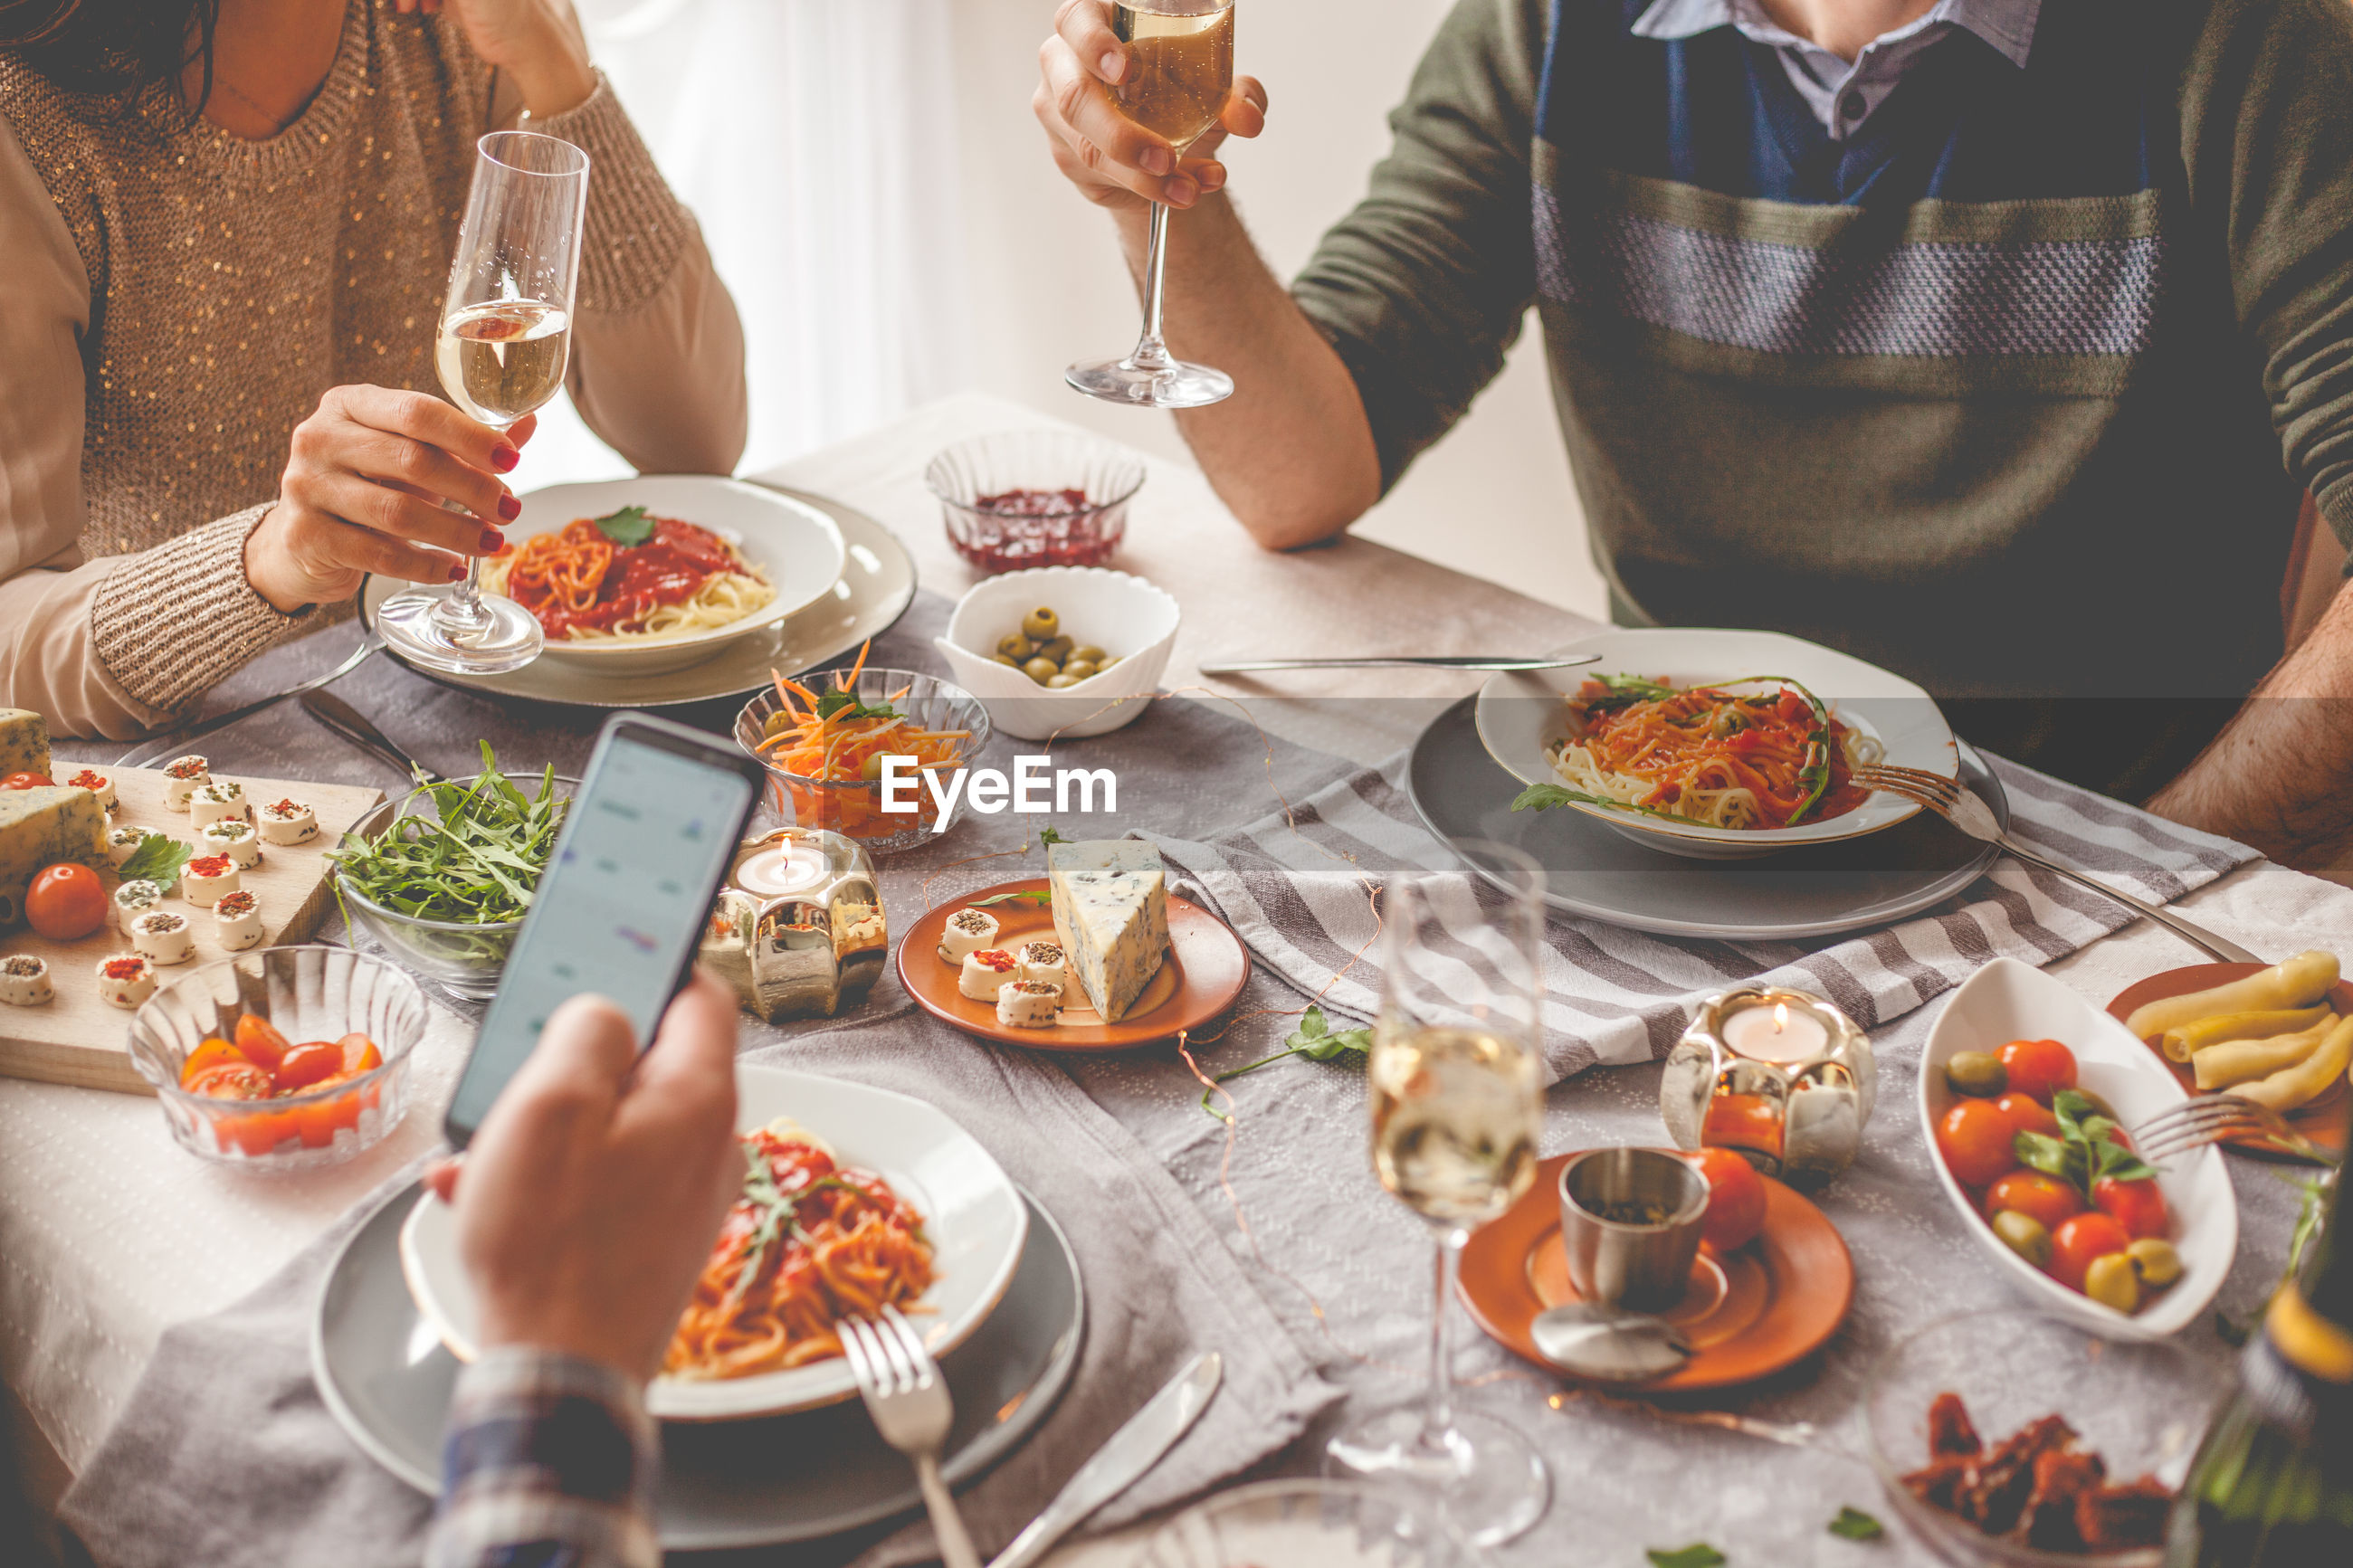 Midsection of people having food at table